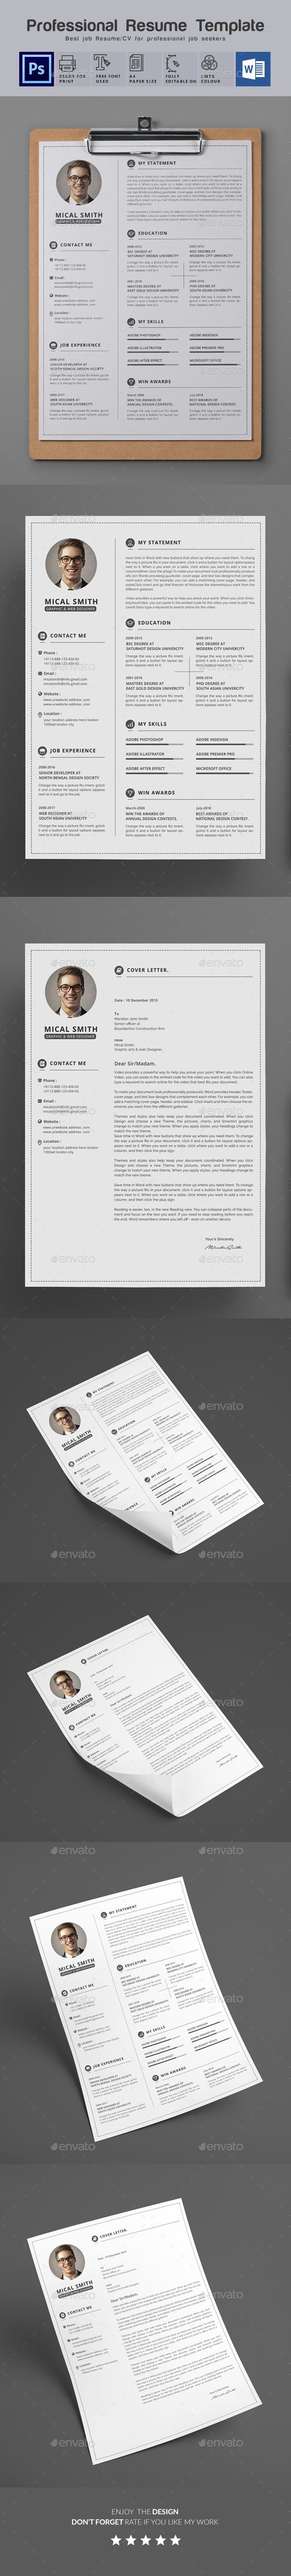 Chronological Resume Samples%0A Resume Template PSD  MS Word